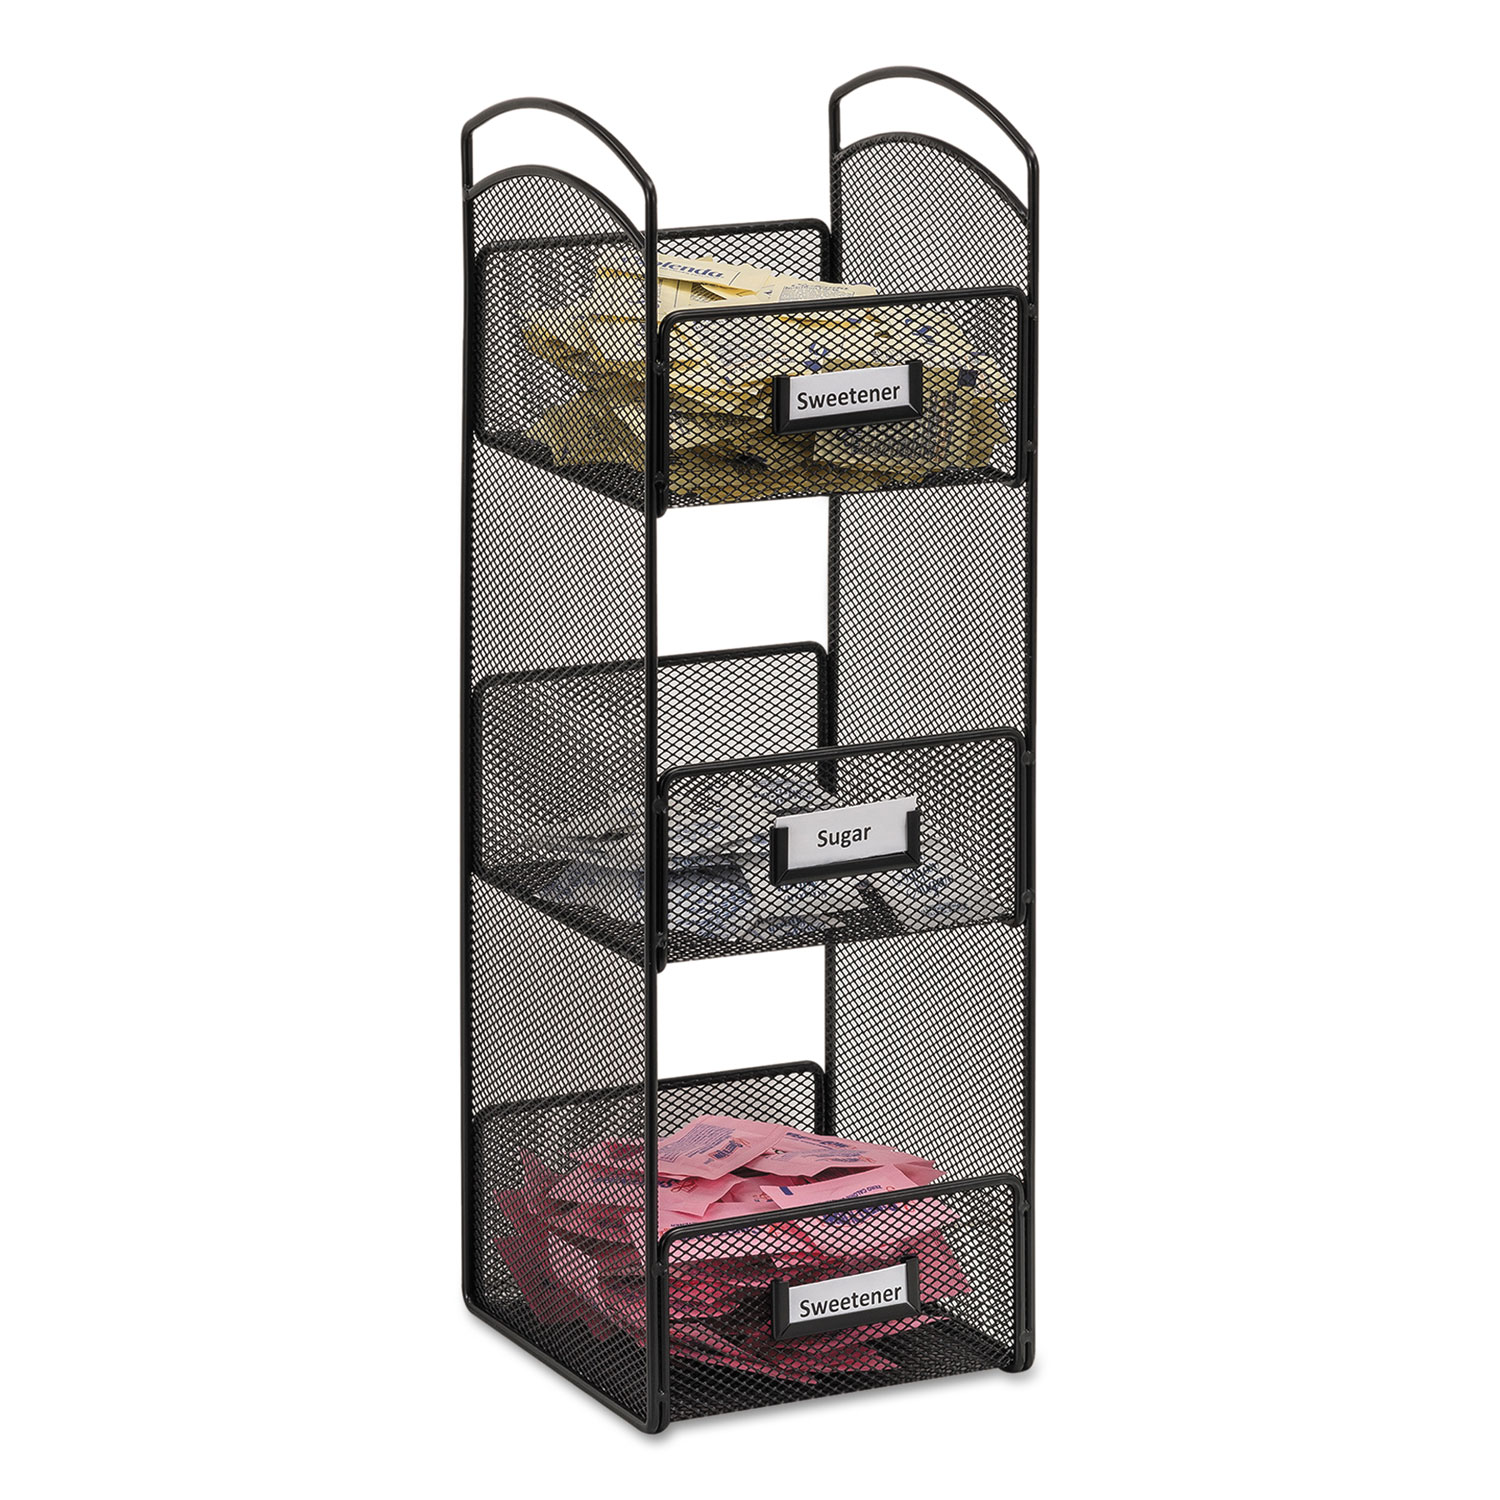 Onyx Breakroom Organizers, 3 Compartments, 6 X 6 X 18, Steel Mesh, Black